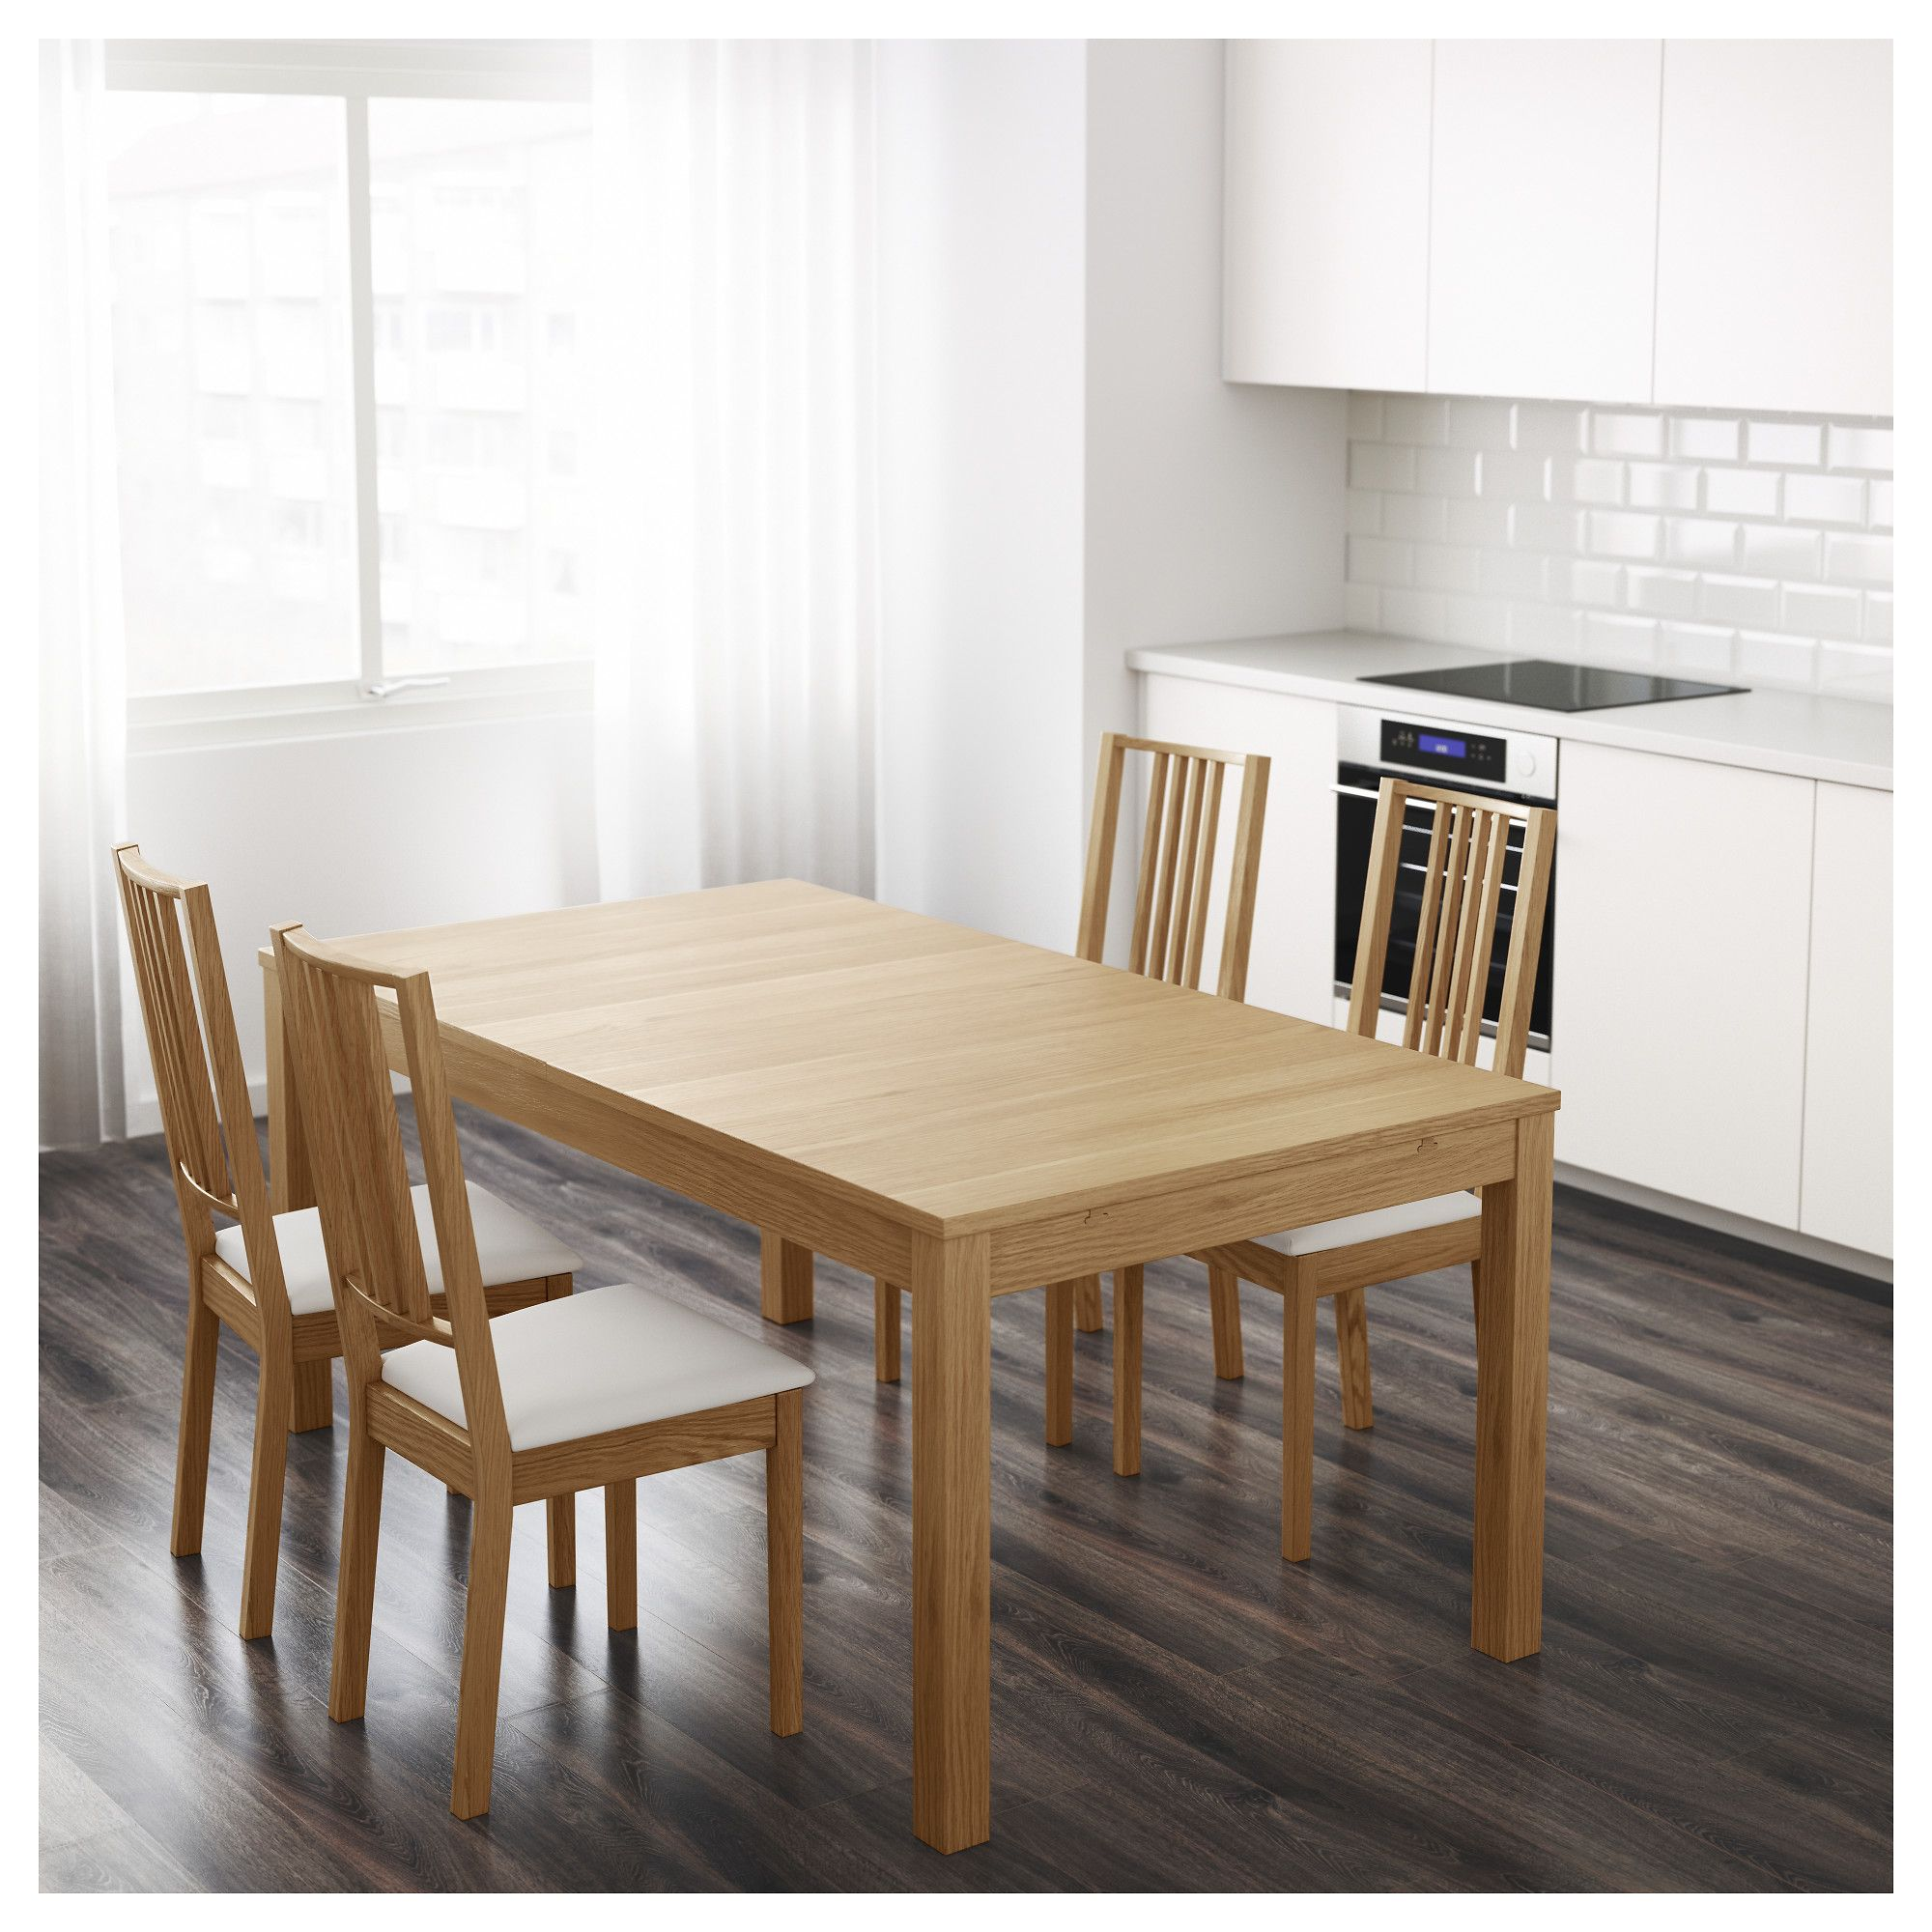 Ikea Bjursta Extendable Table 2 Extension Leaves Included